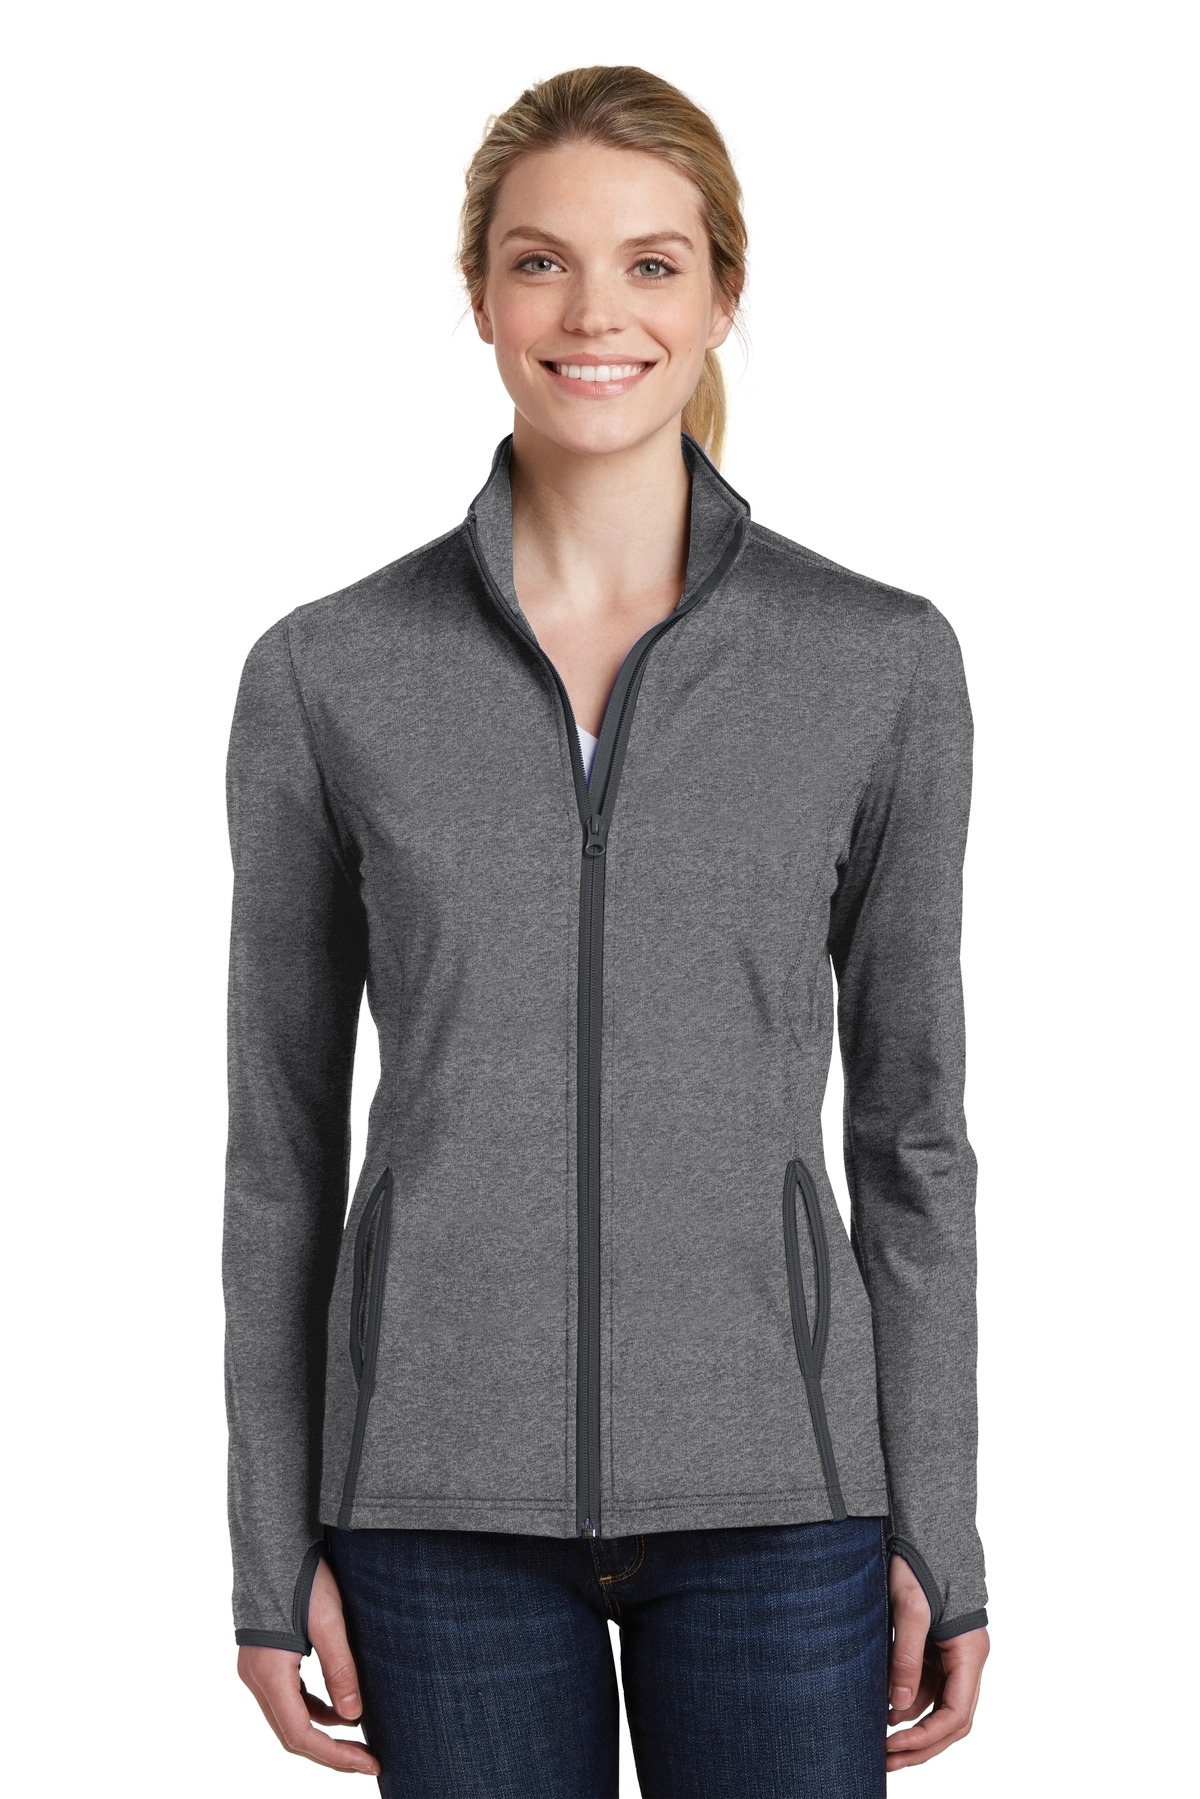 Sport-Tek ®  Ladies Sport-Wick ®  Stretch Contrast Full-Zip Jacket.  LST853 - Charcoal Grey Heather/ Charcoal Grey